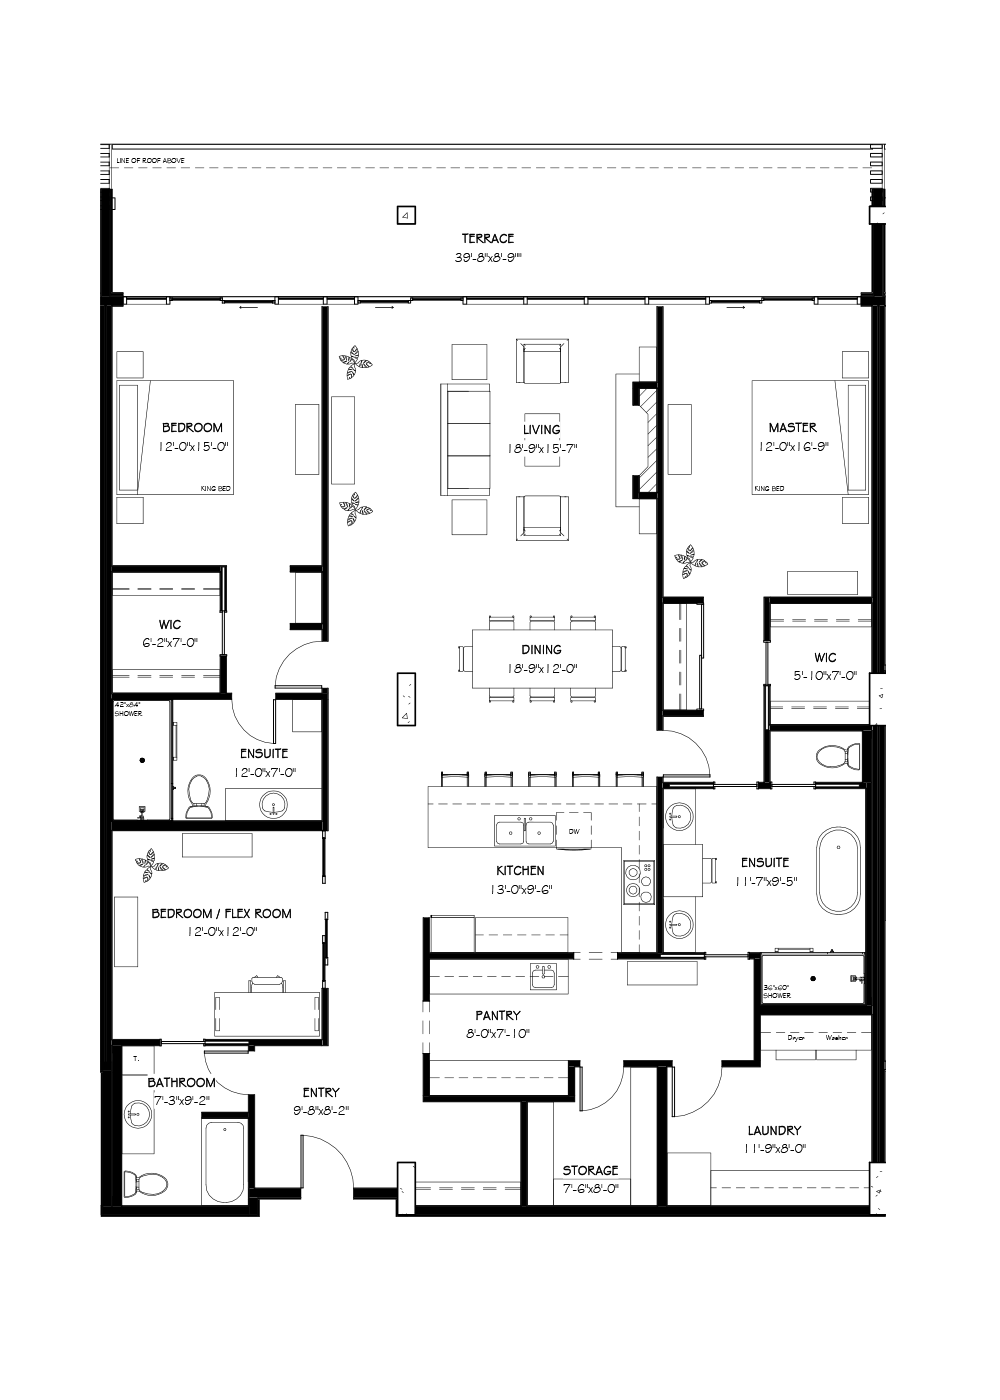 Penthouse One, 2707 SF